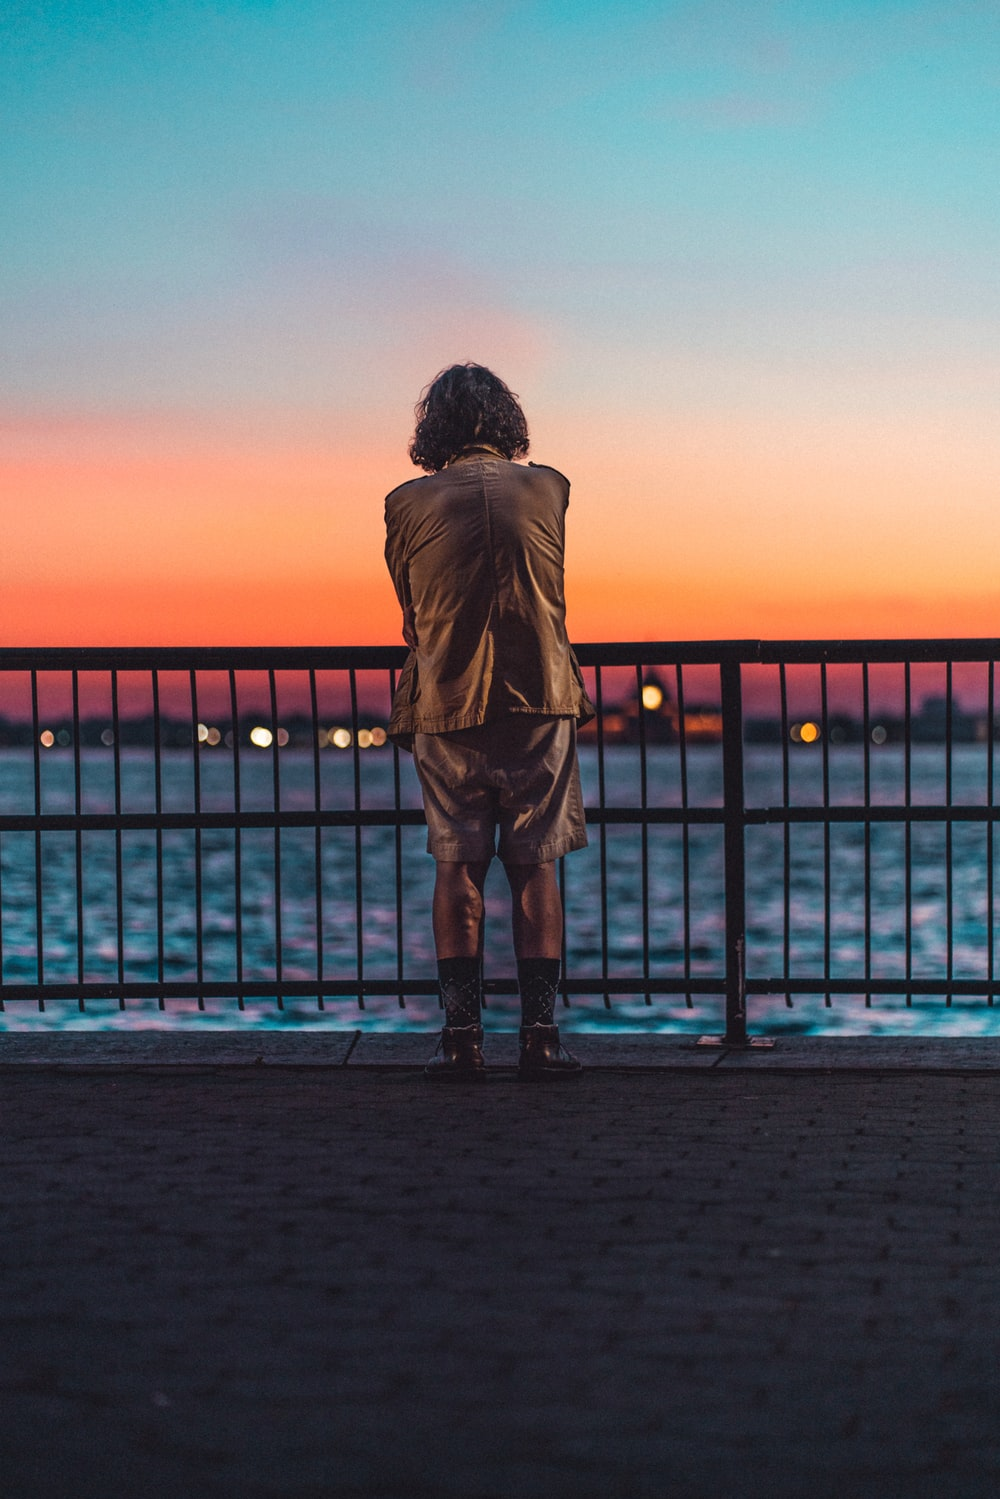 silhouette of person standing on dock during sunset